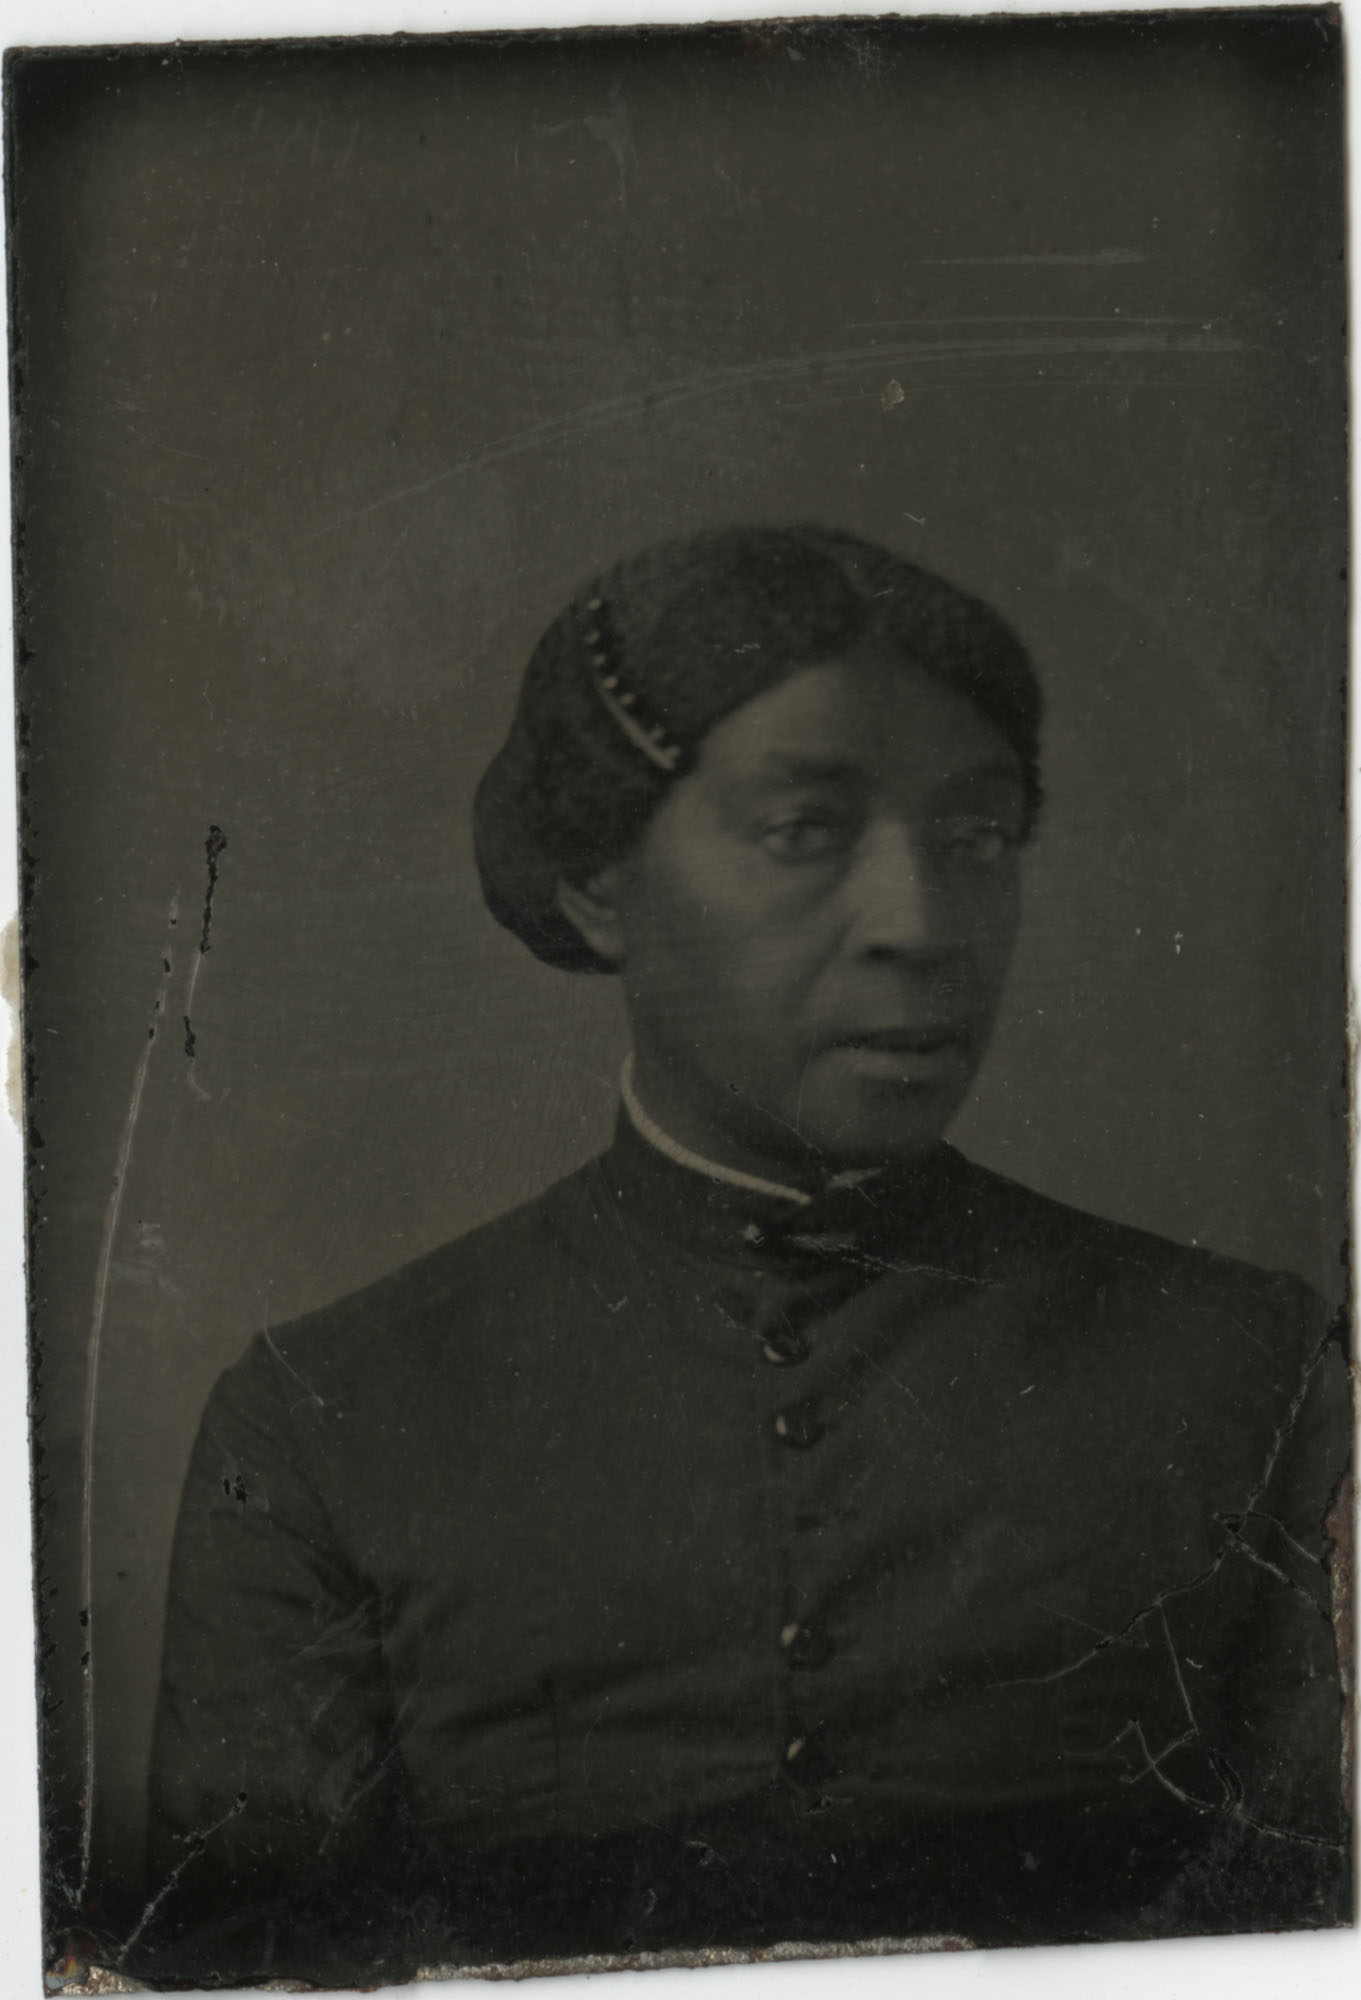 Portrait of an unidentified African American woman, possibly an enslaved woman.